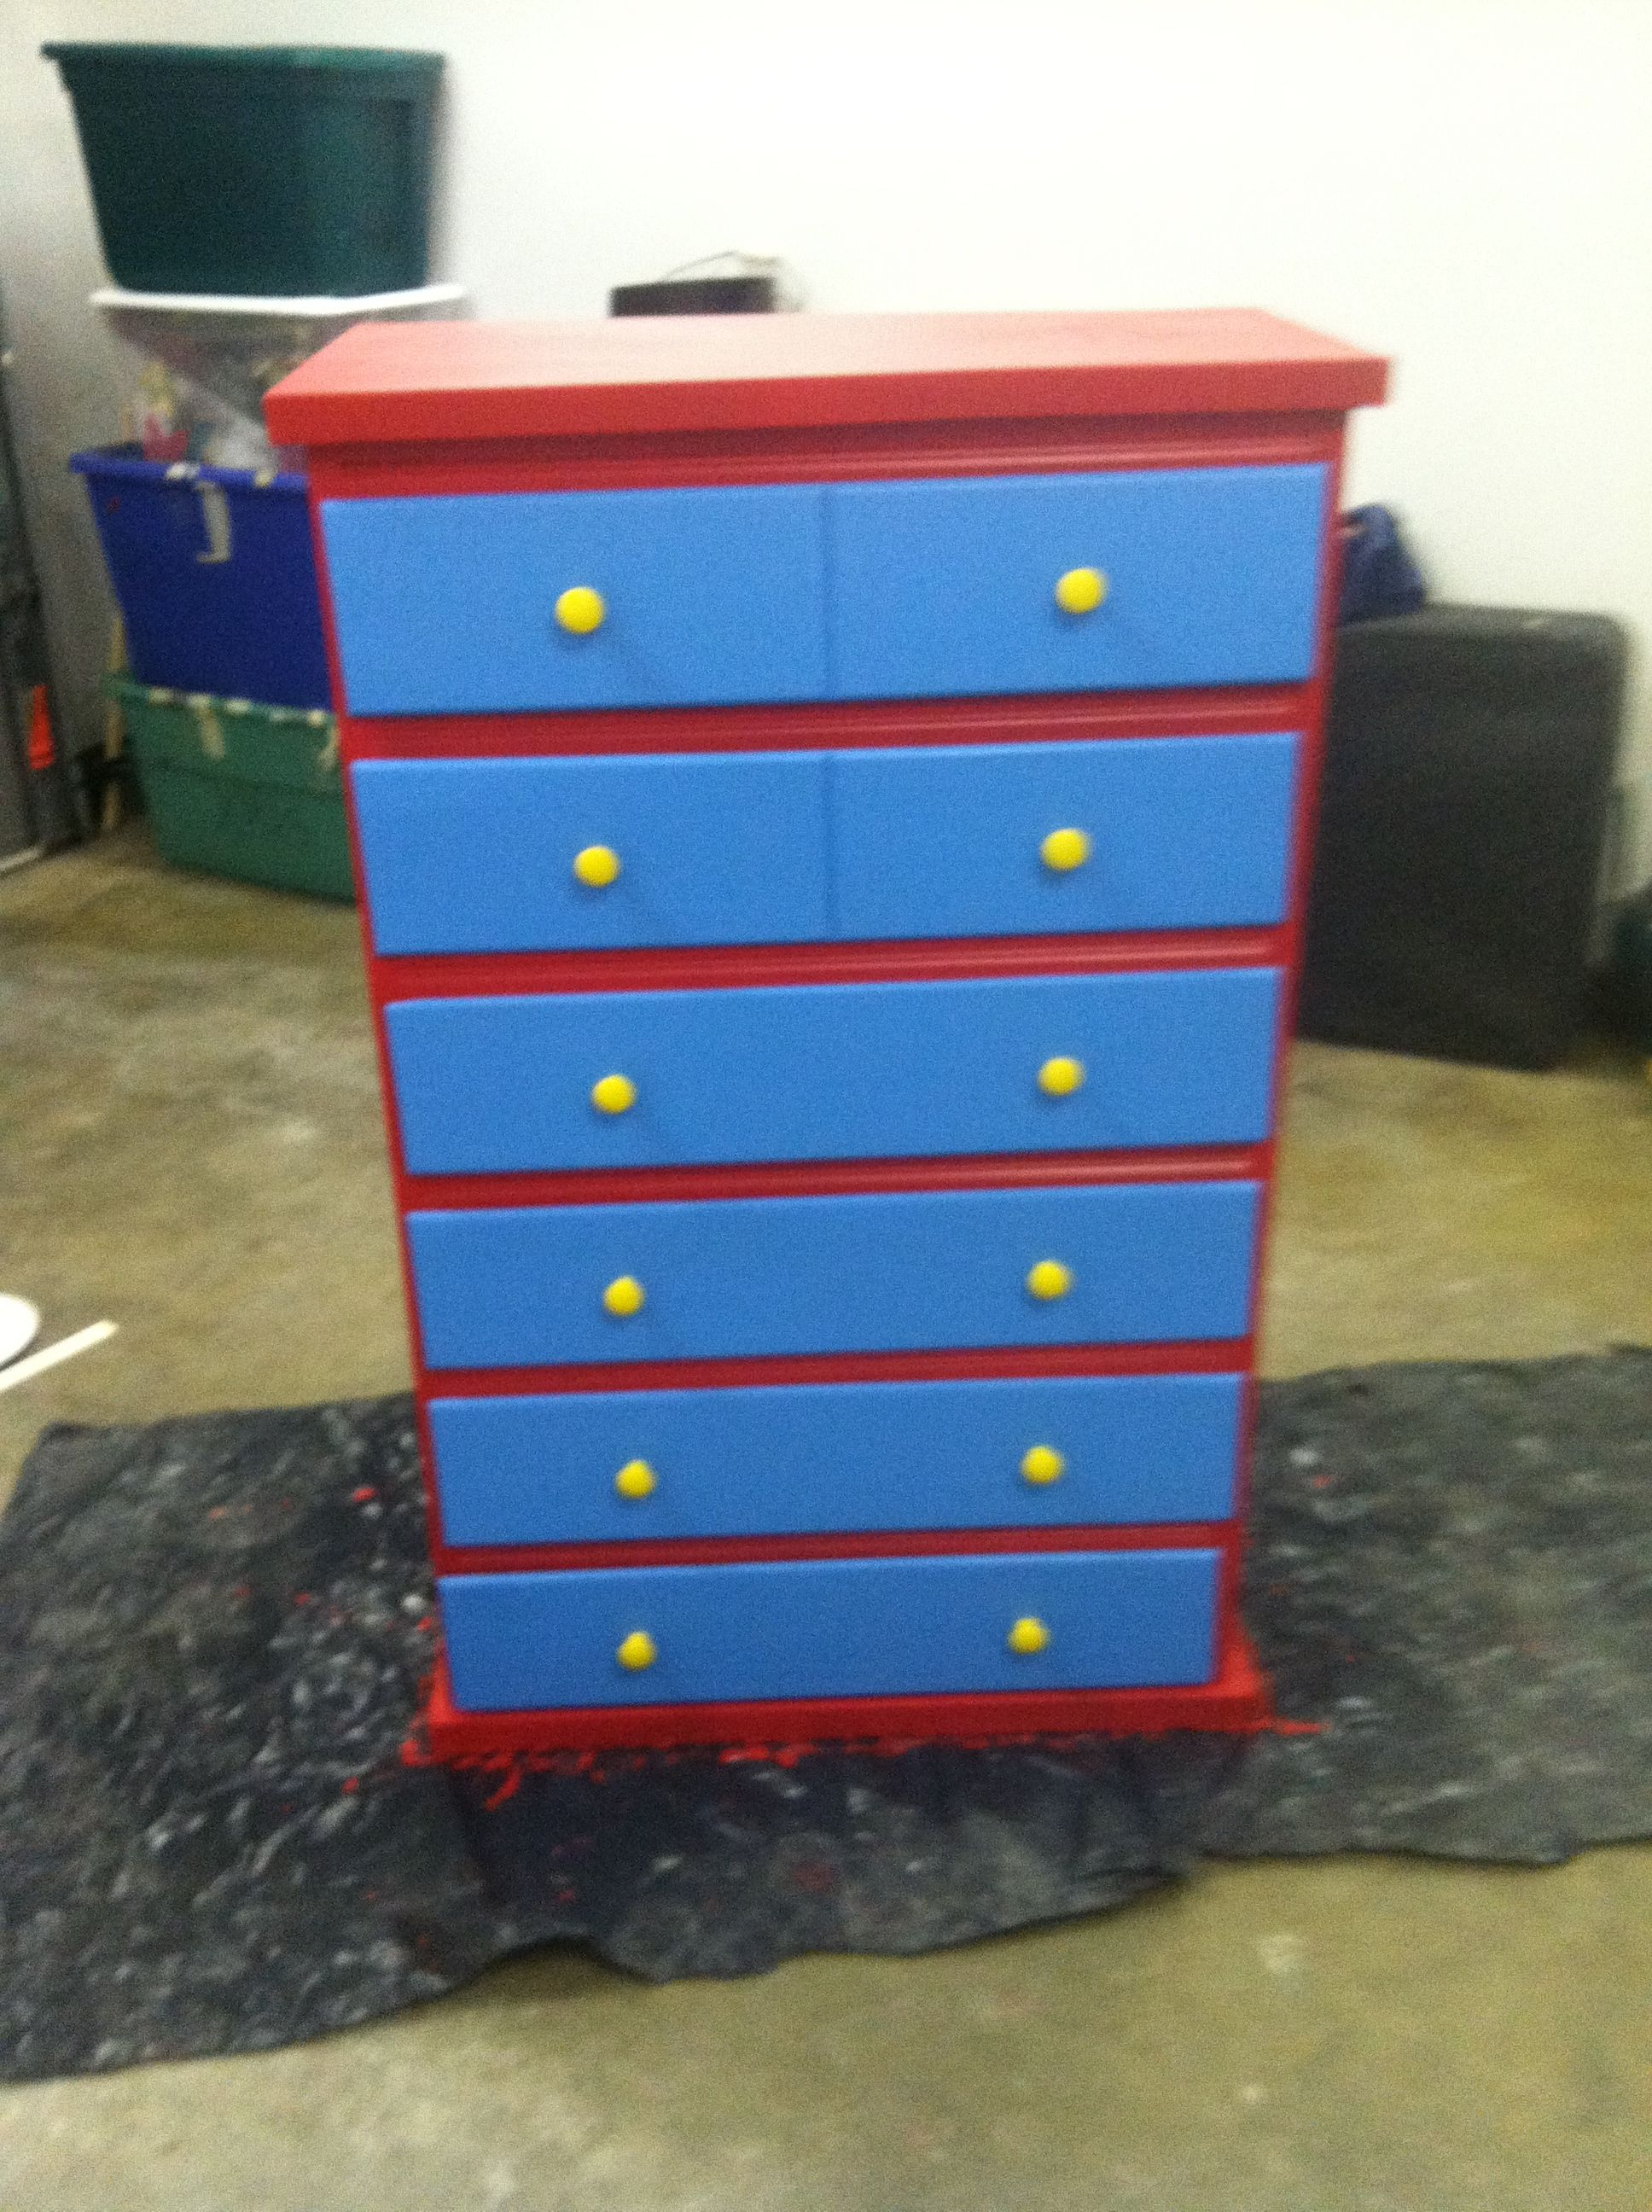 Superieur Dresser For A Thomas The Train Bed :)